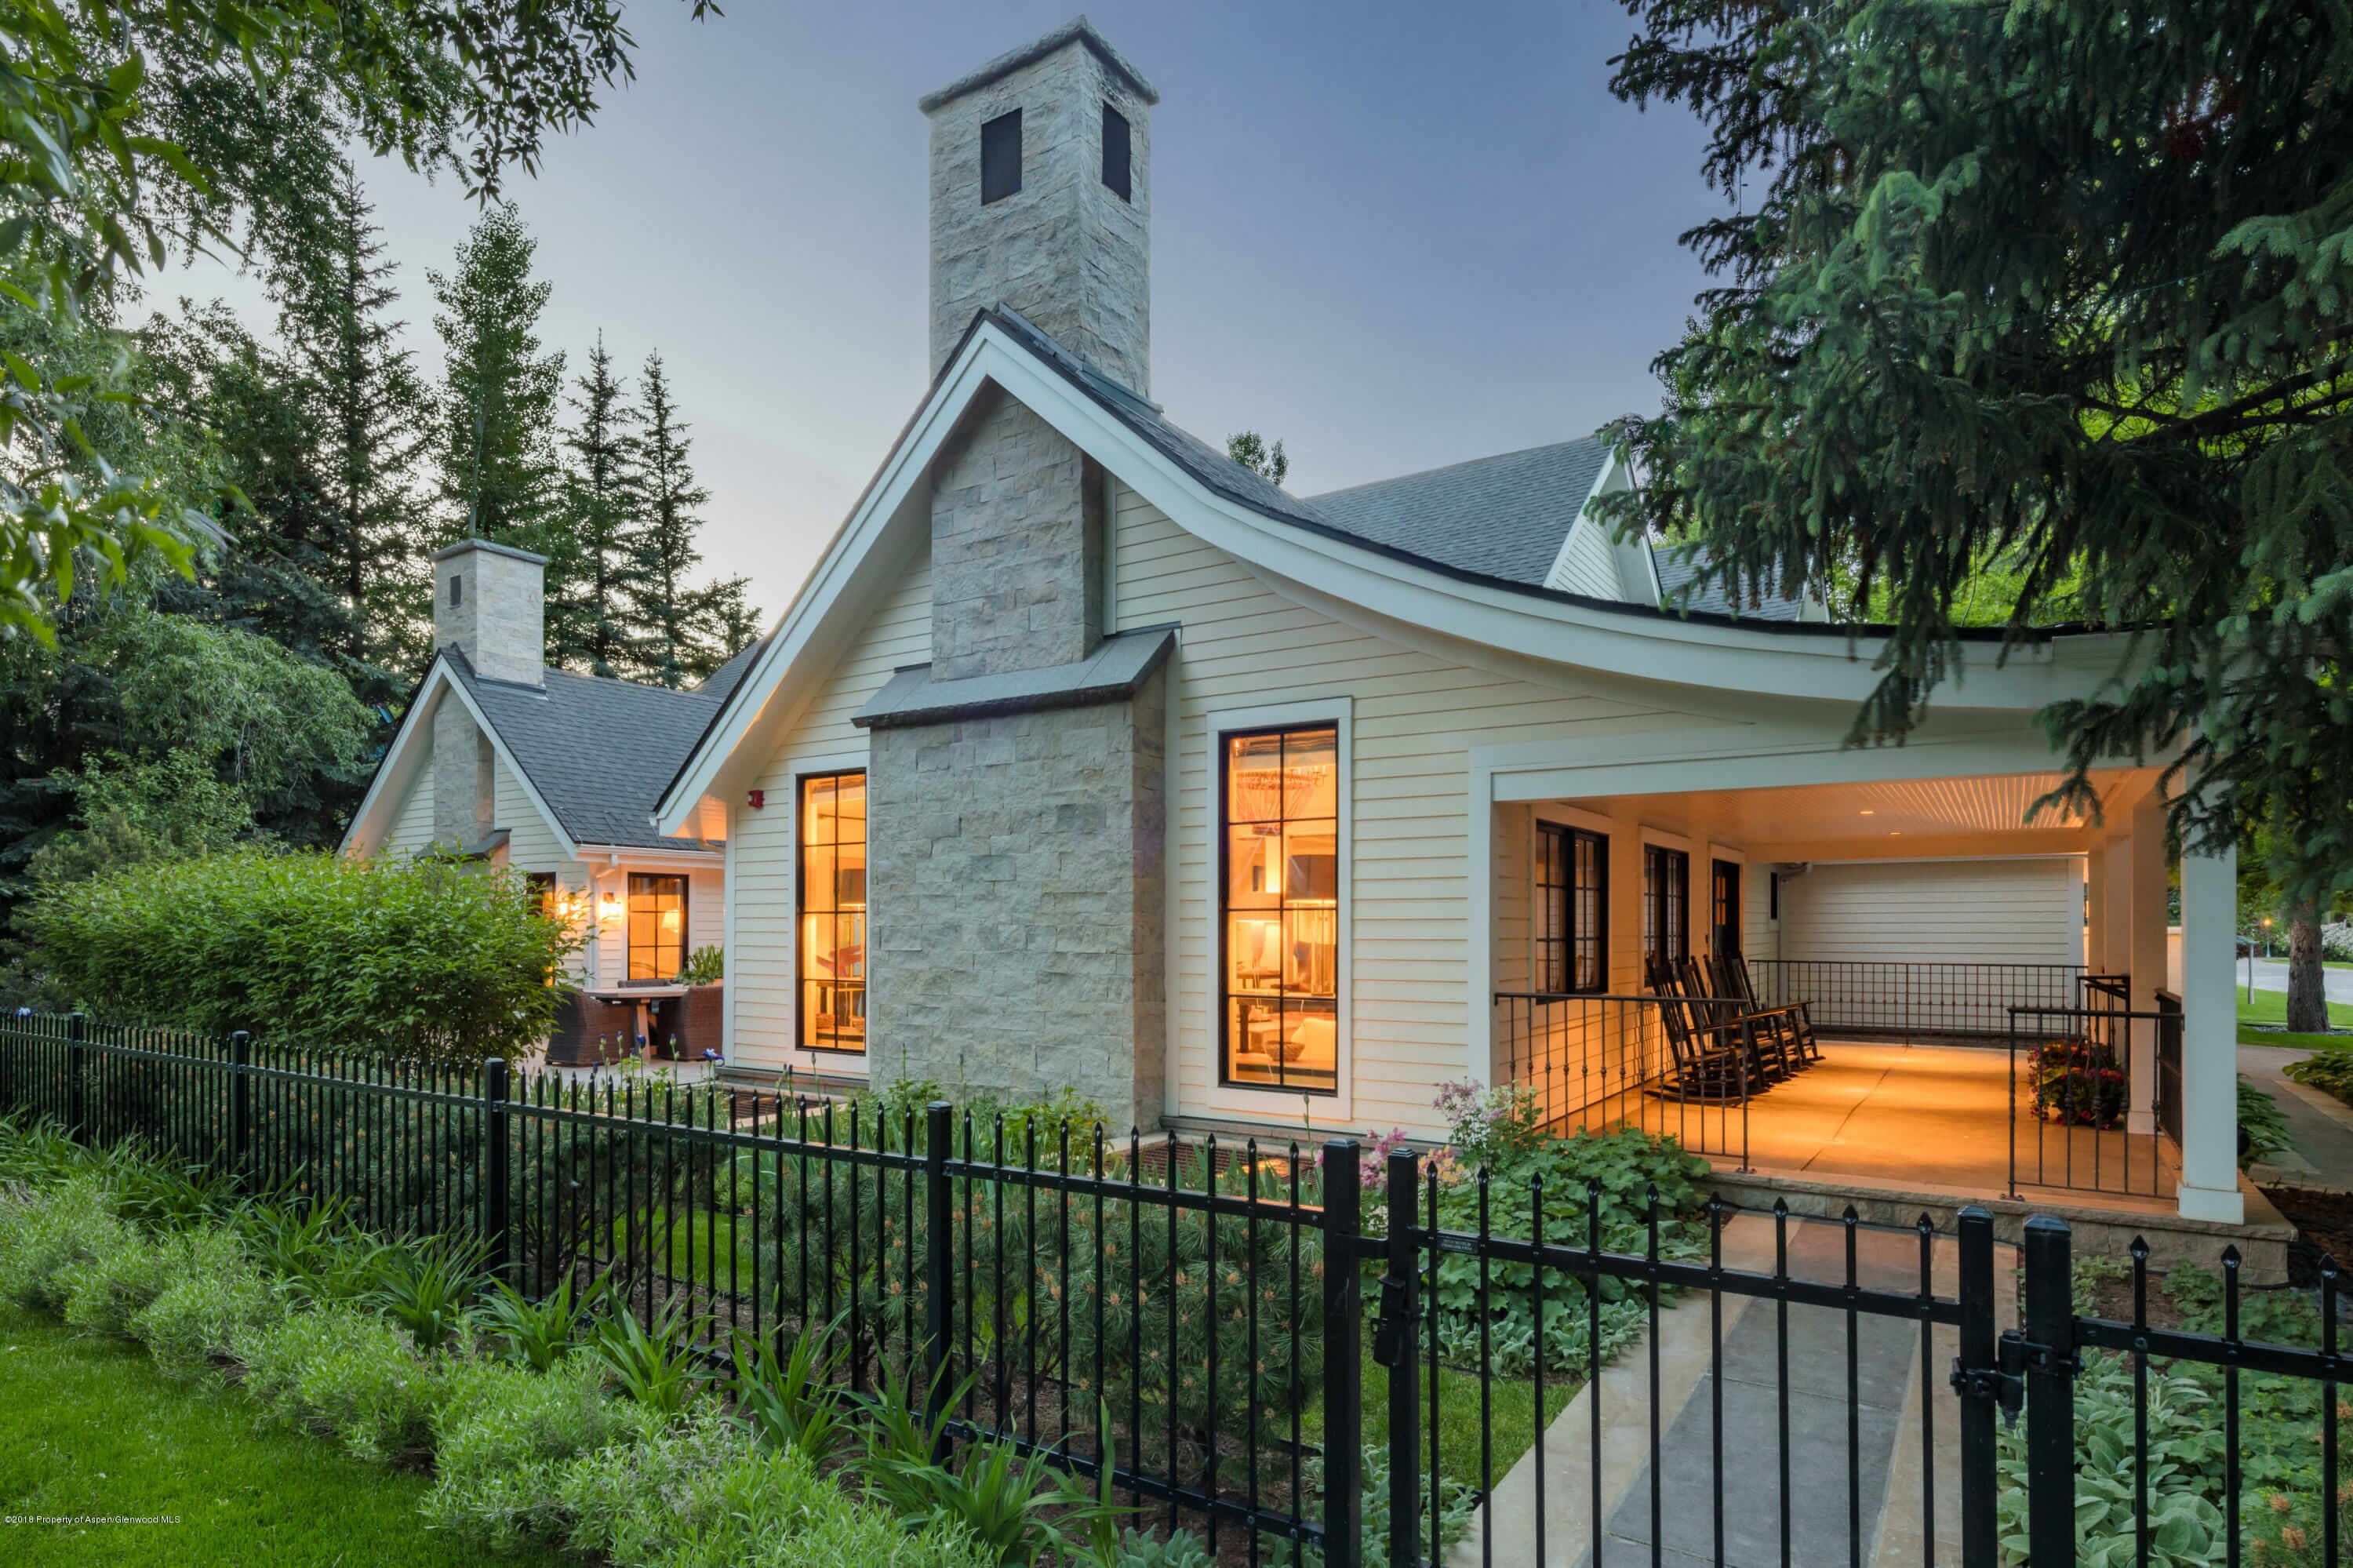 2011 Re-modeled West End Aspen Victorian Home Sells at $17.5M/$2,968 Sq Ft Image